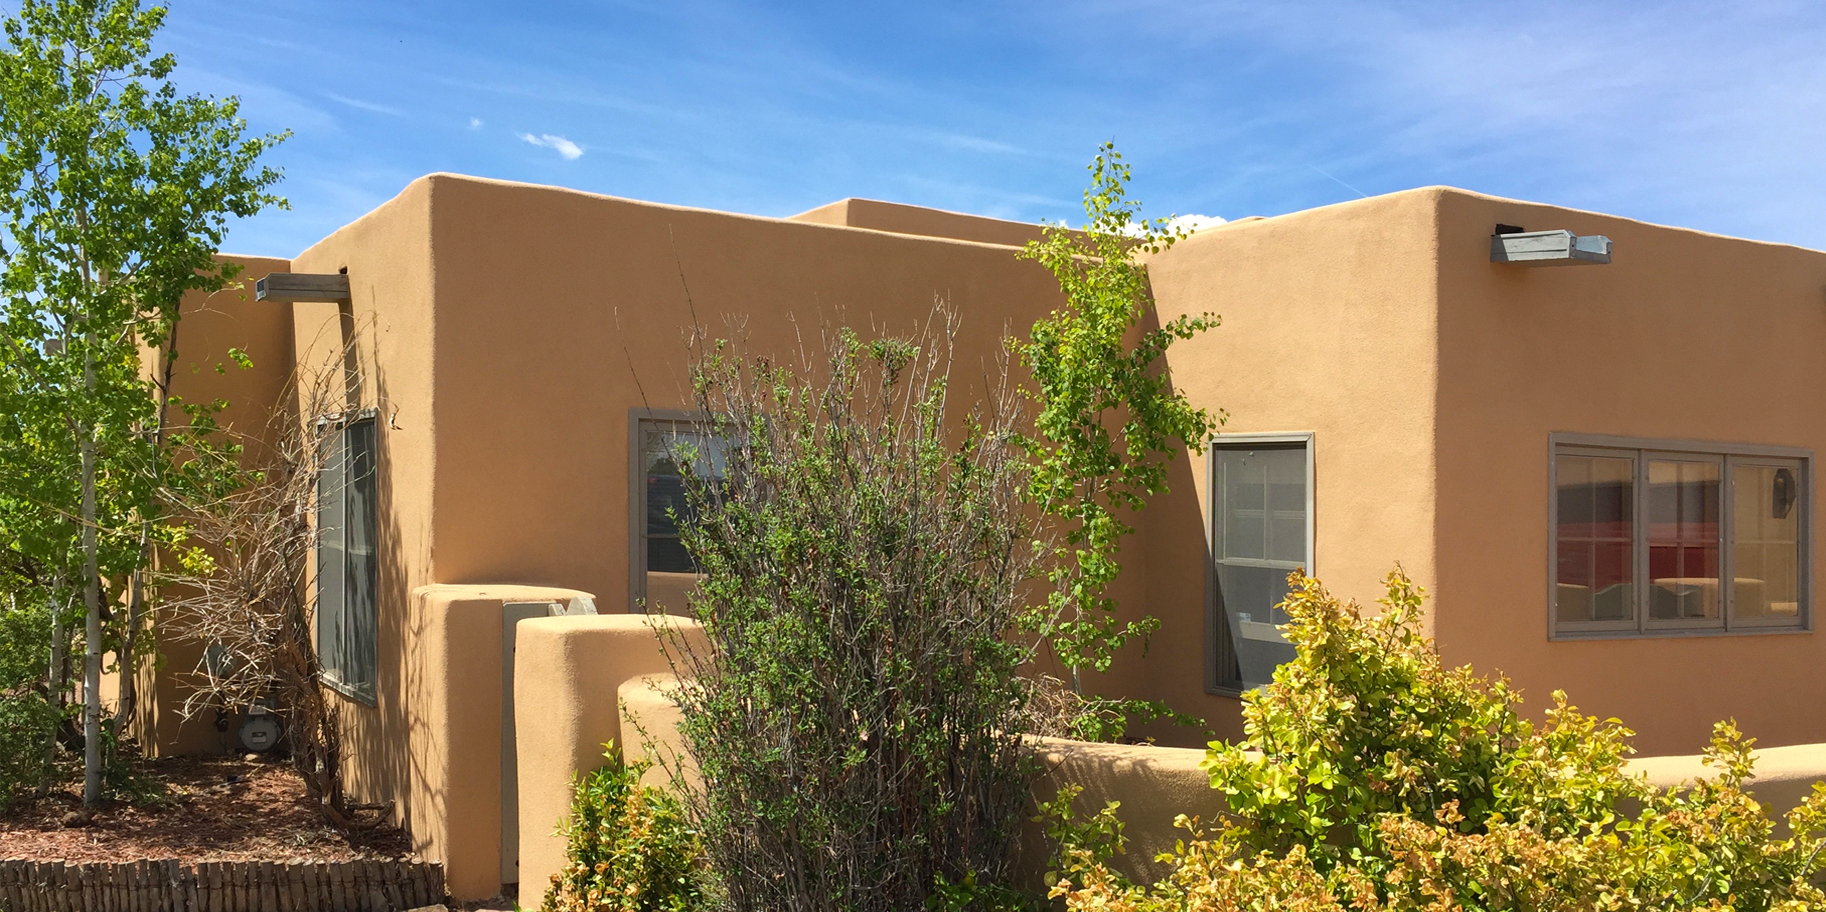 New Stucco for a Home in Santa Fe